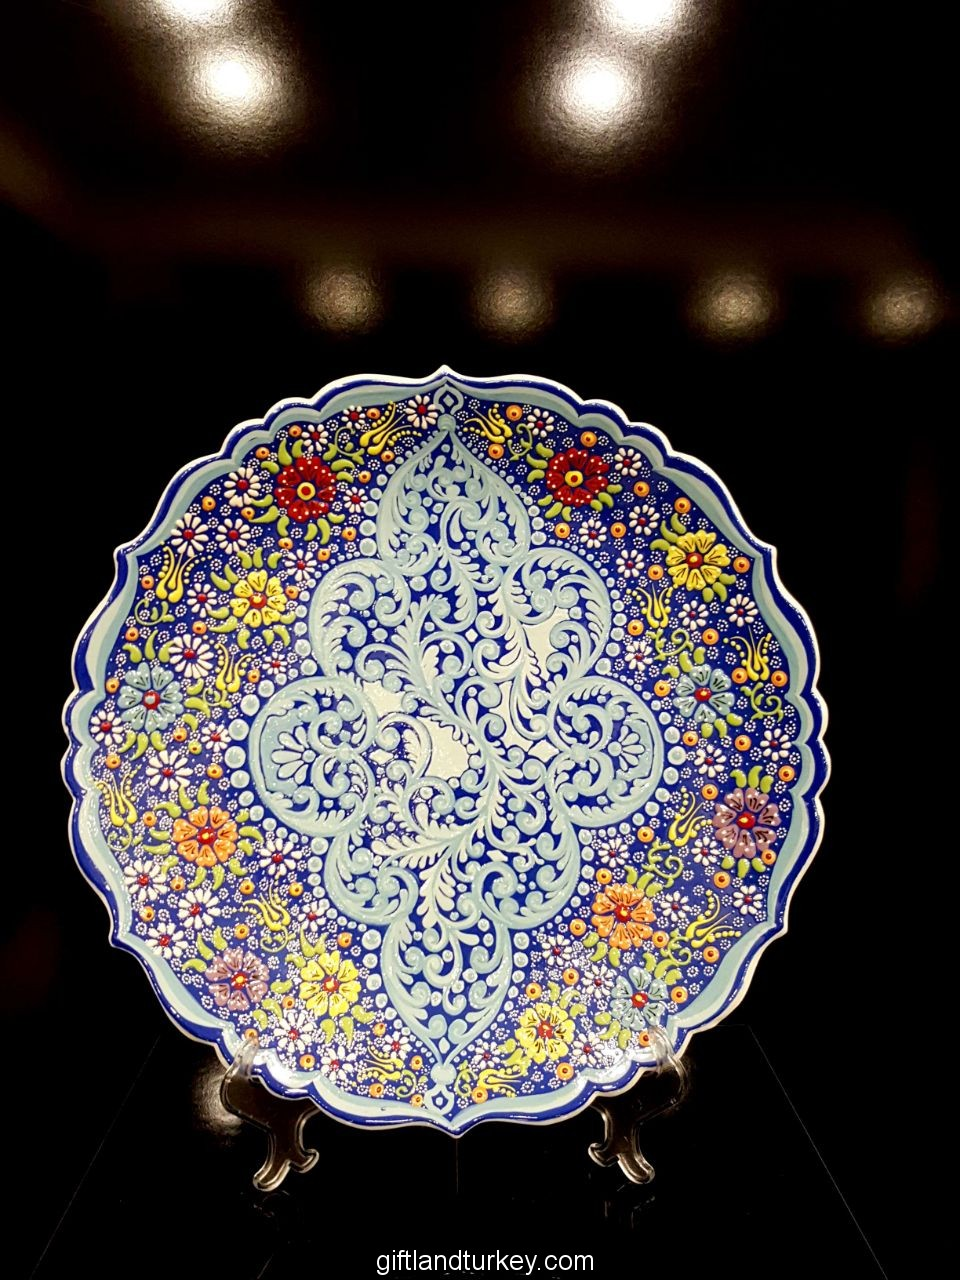 Turkish Handmade Ceramic Plate